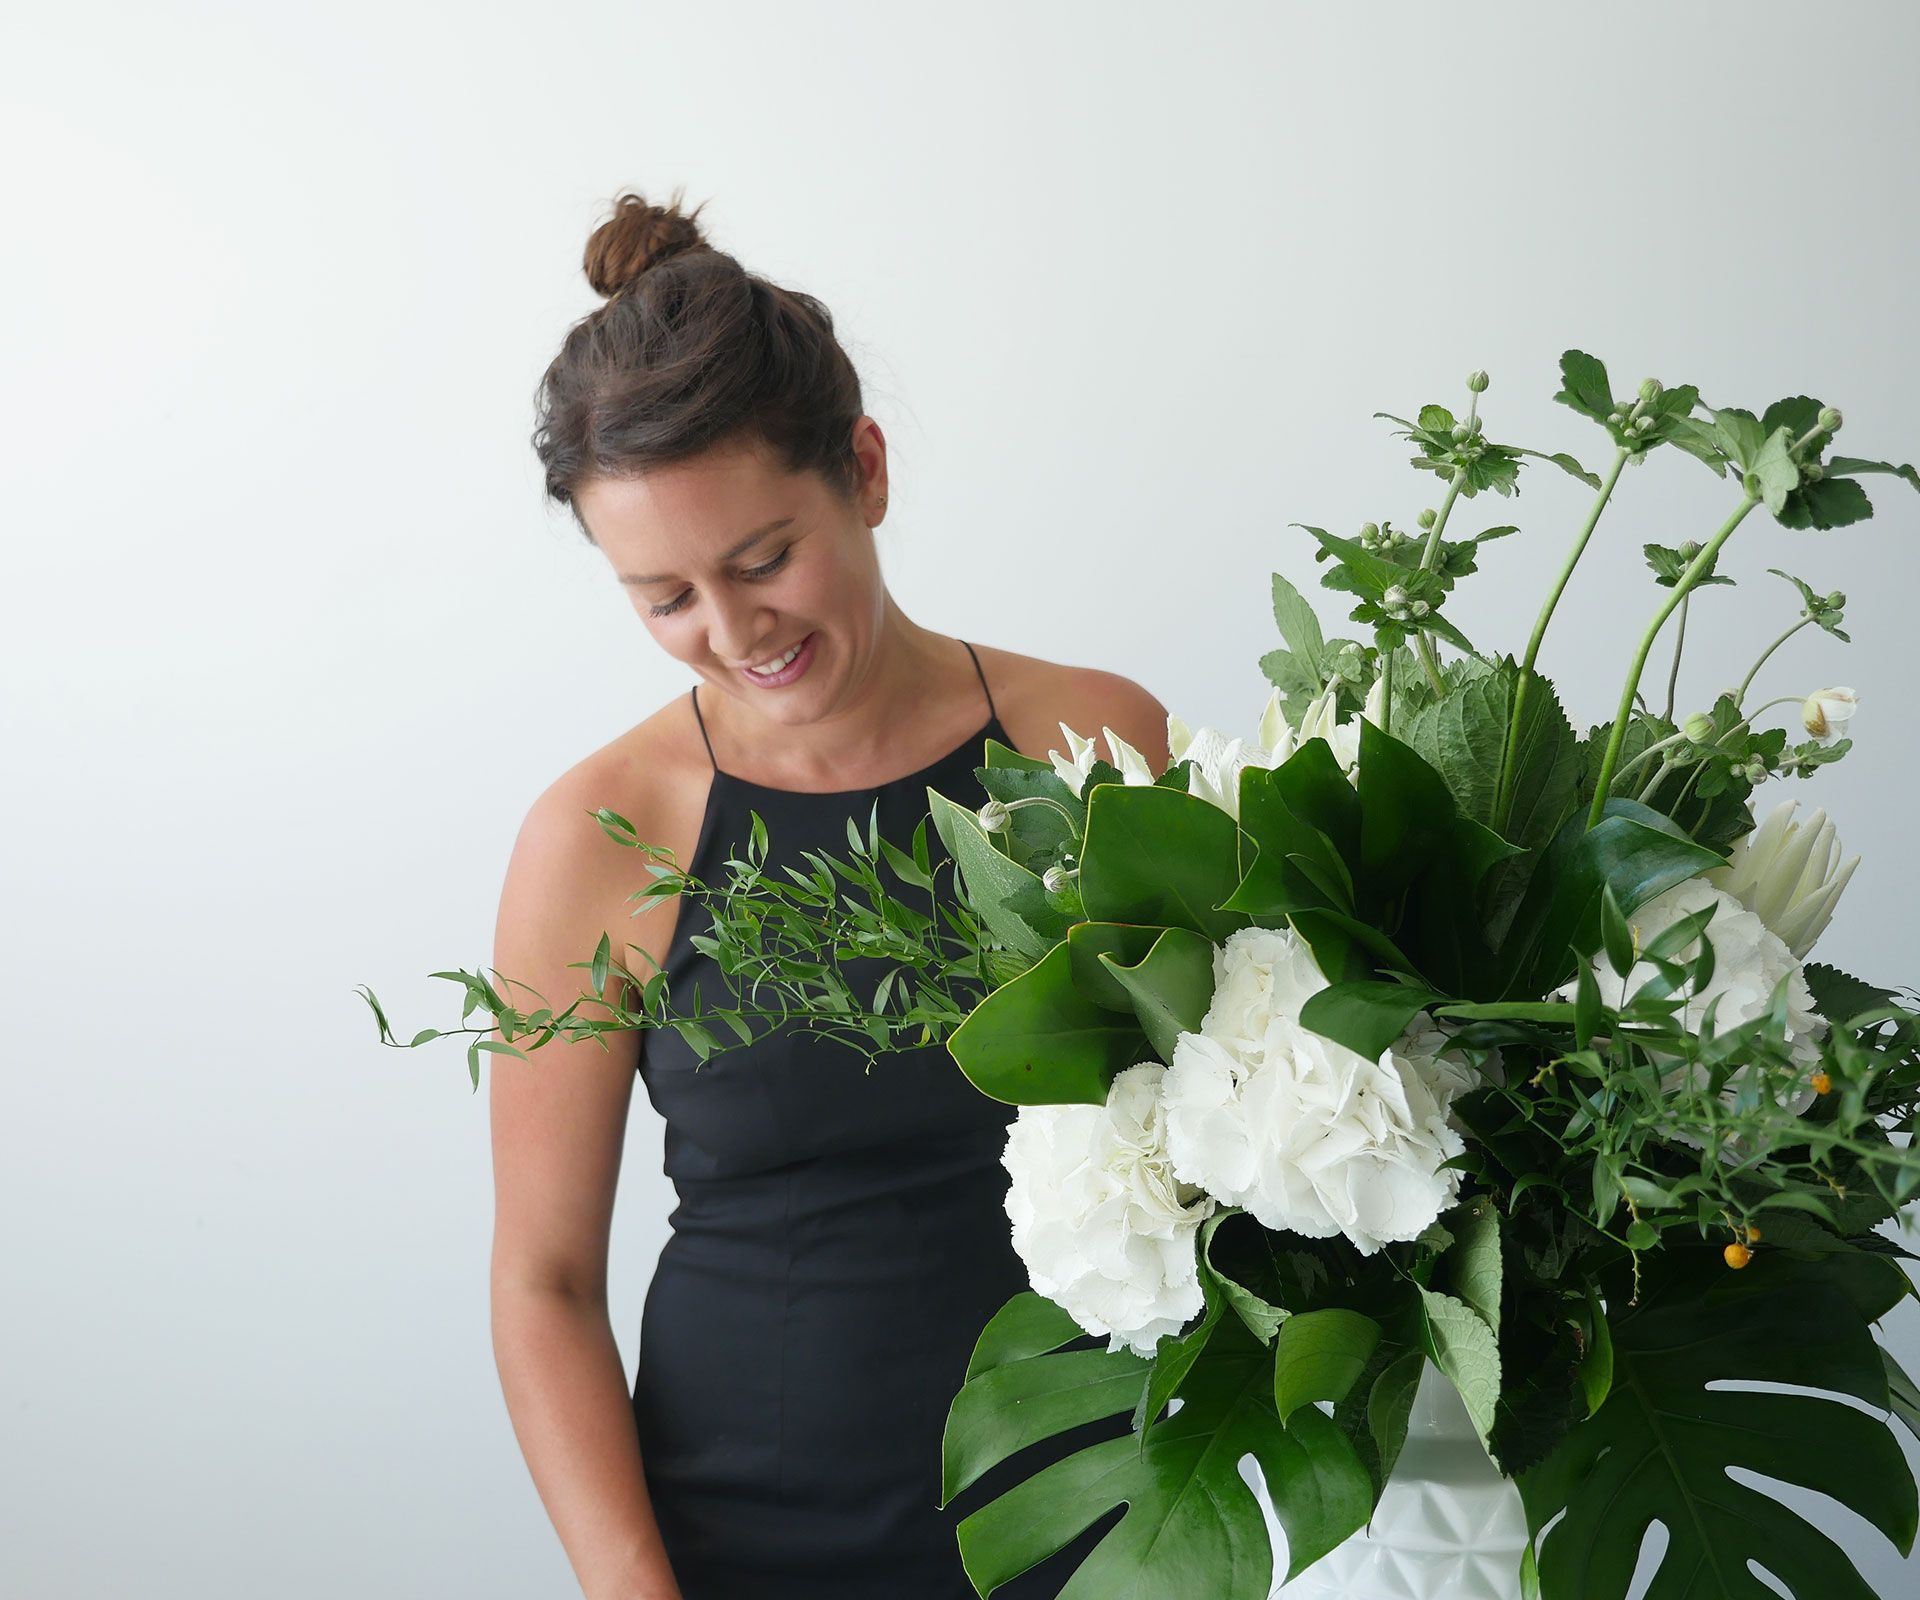 Superstar florist Eden Hessell shows us how to arrange long-stemmed flowers in a tall vase. Here are hertips and tricks for masteringthis look  How to get the look You will need: 4 x stems hydrangea greenery 2 x king protea 5 x hydrangea 6 x birch stems 4 x Japanese anemone 4 x Monstera …